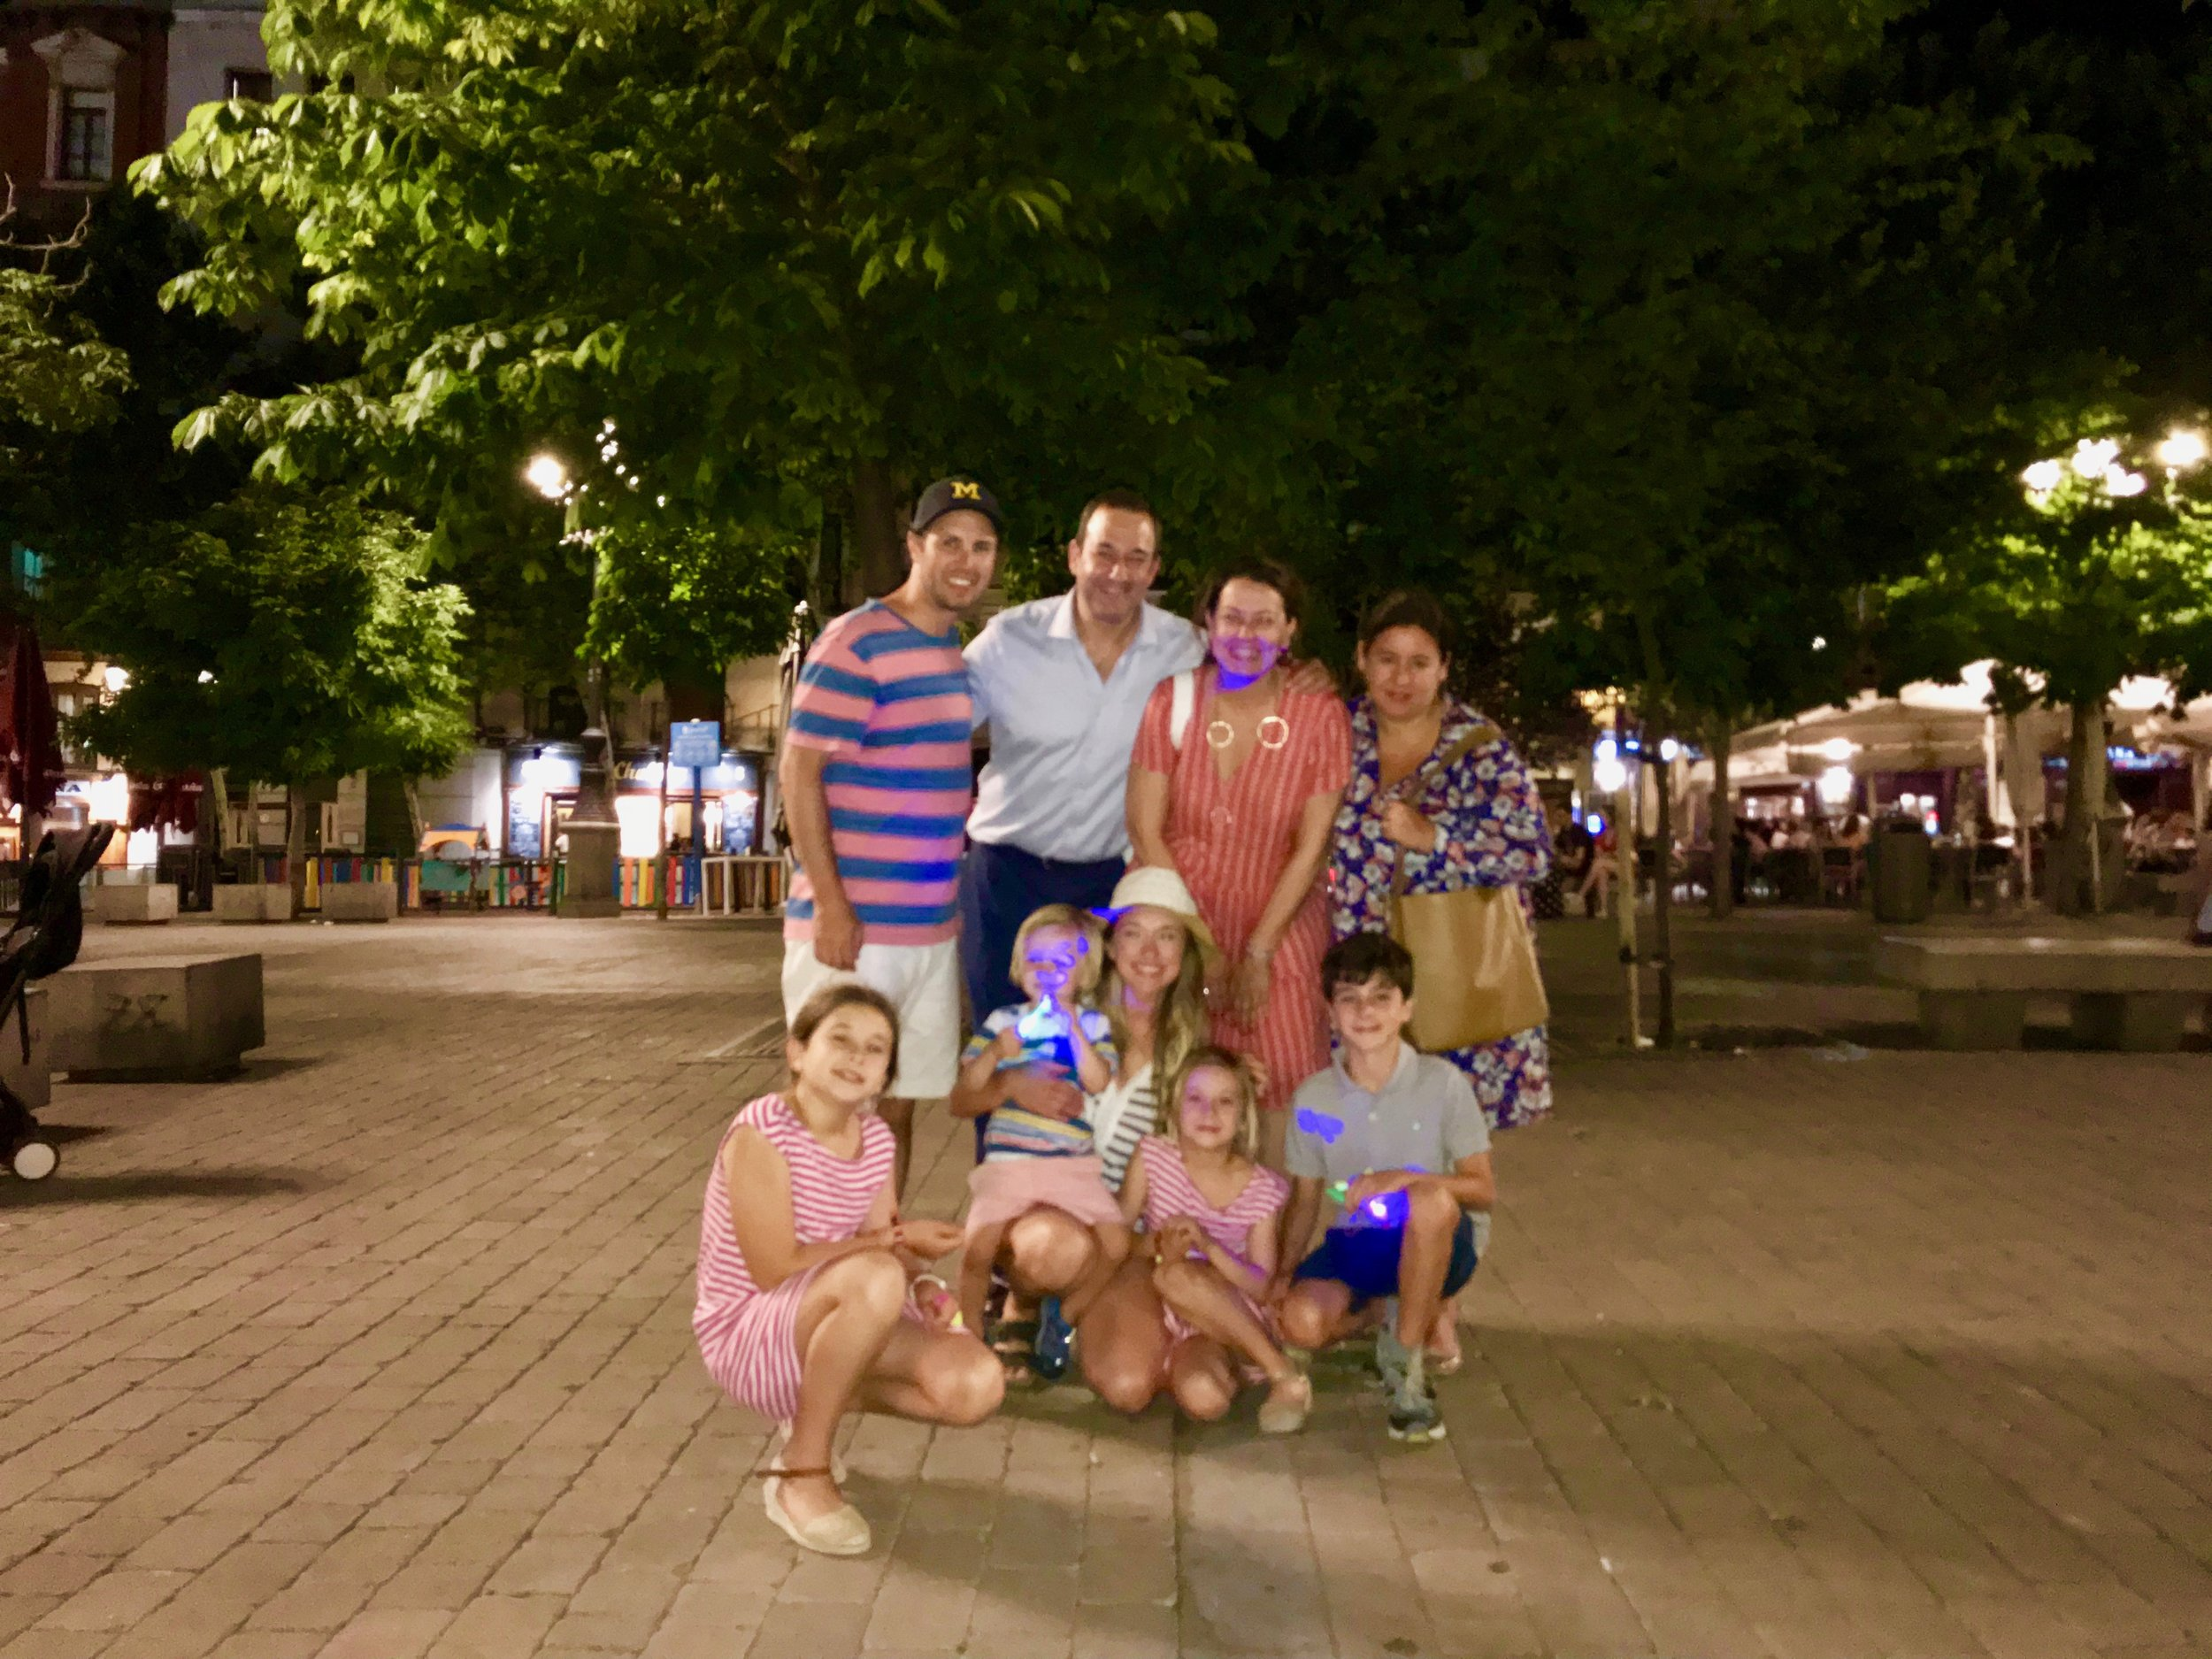 The perfect example of an amazing and tight-knit family. Hanging out at Plaza de Santa Ana in Madrid, Spain.